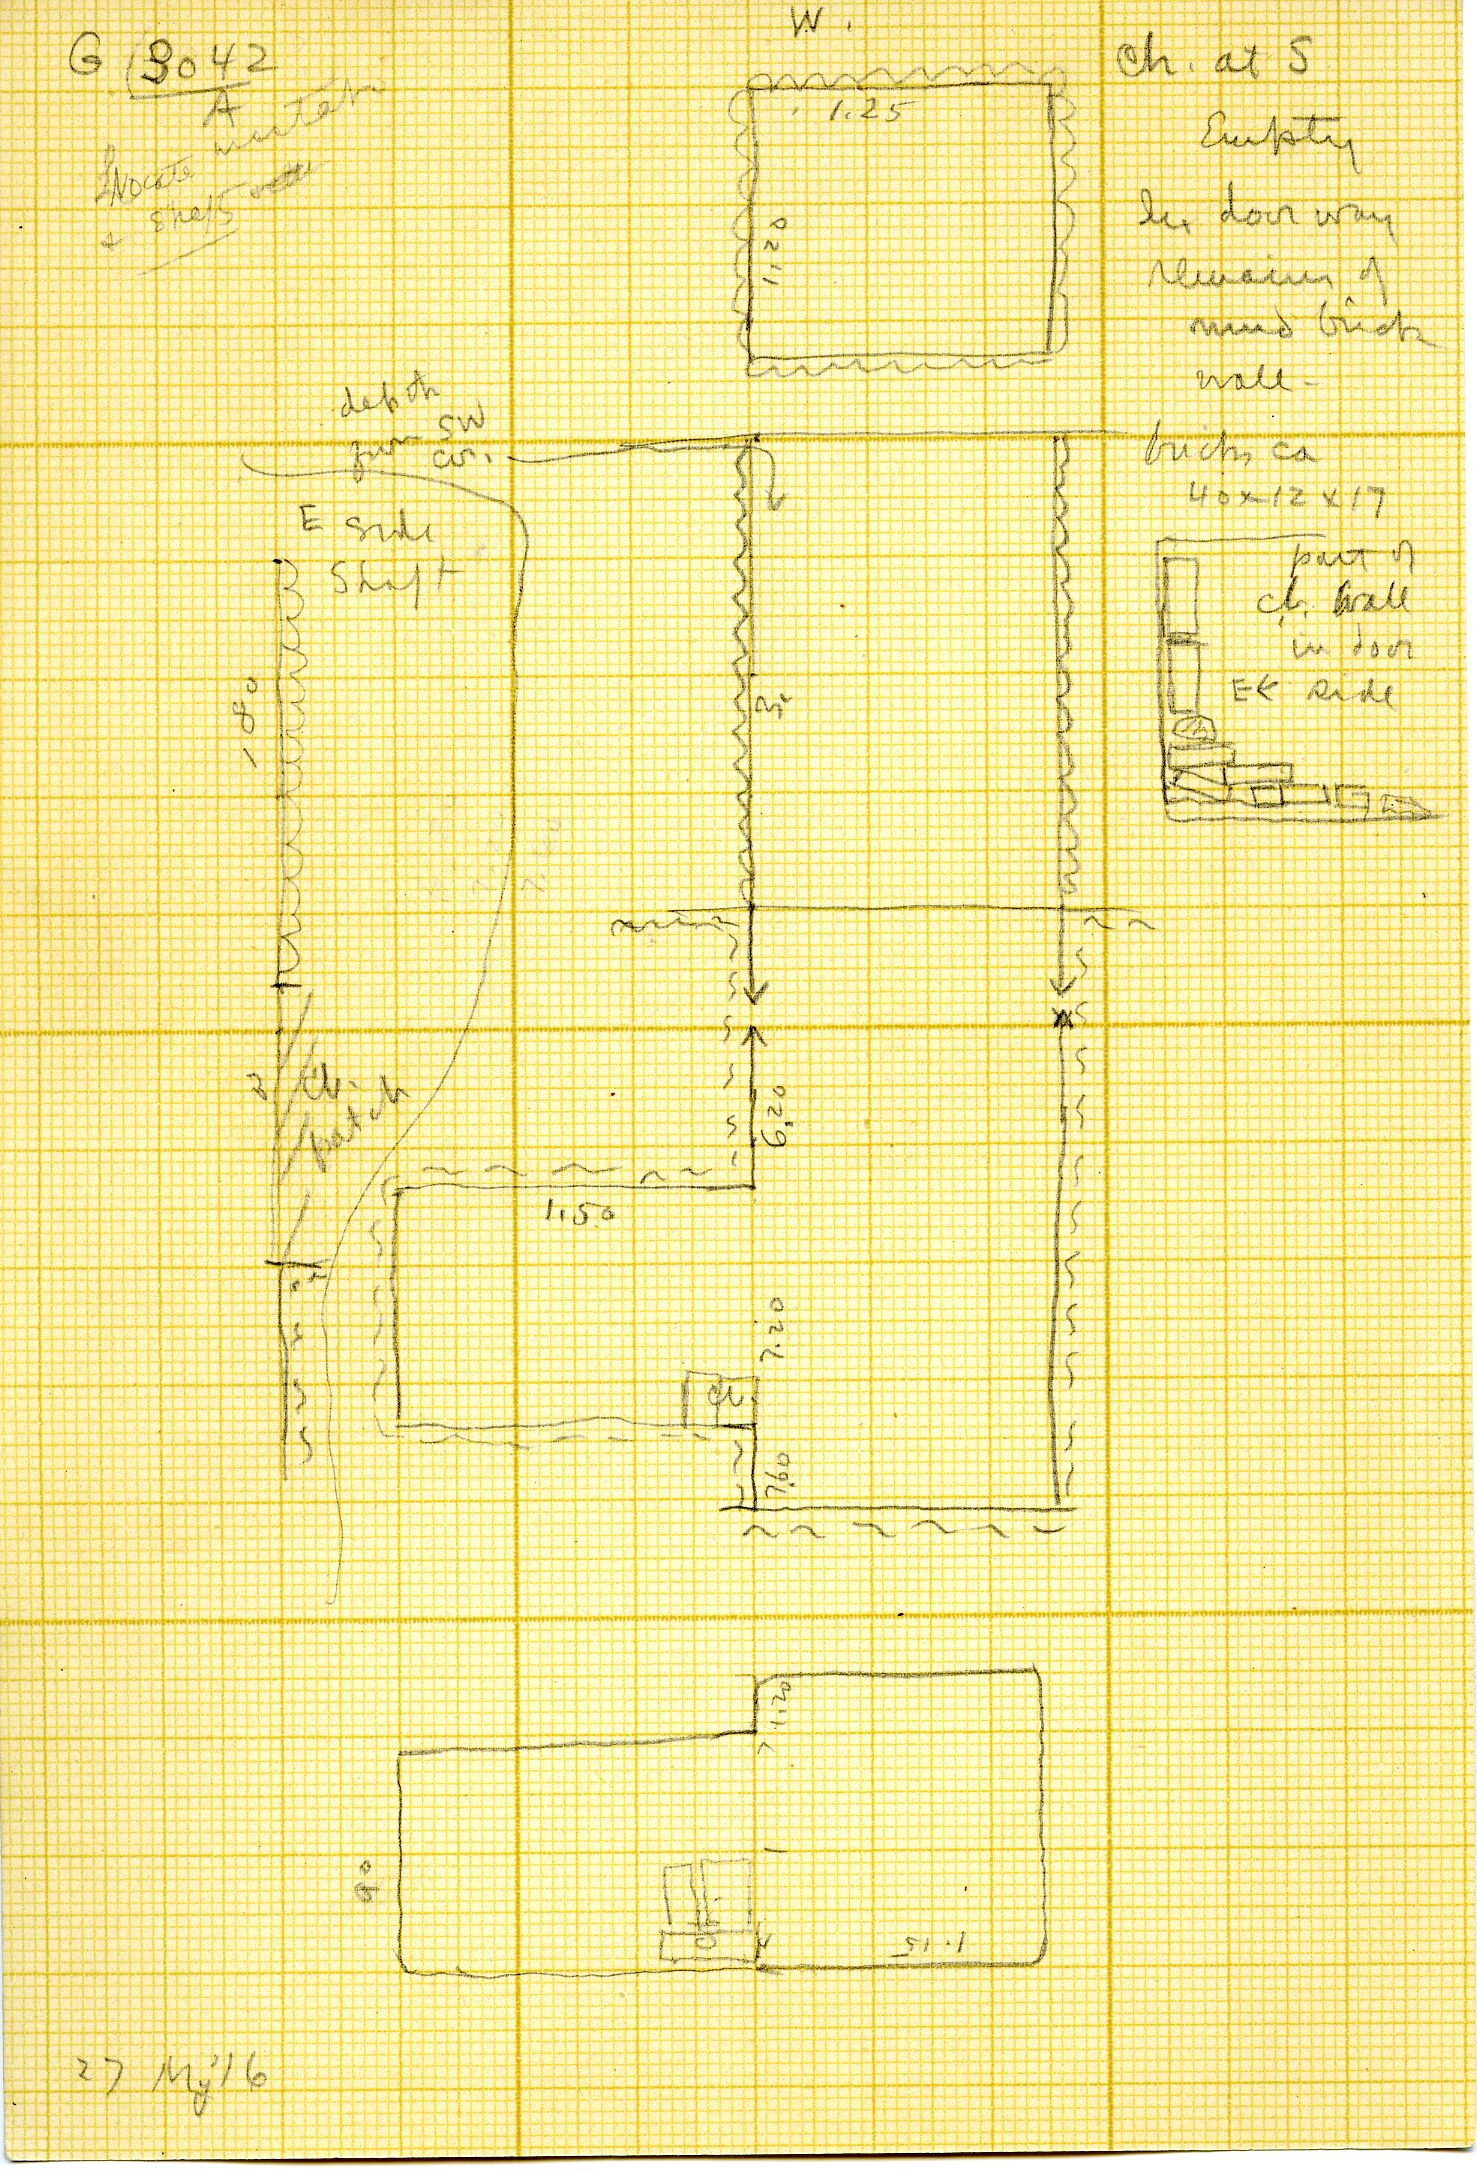 Maps and plans: G 3042, Shaft A